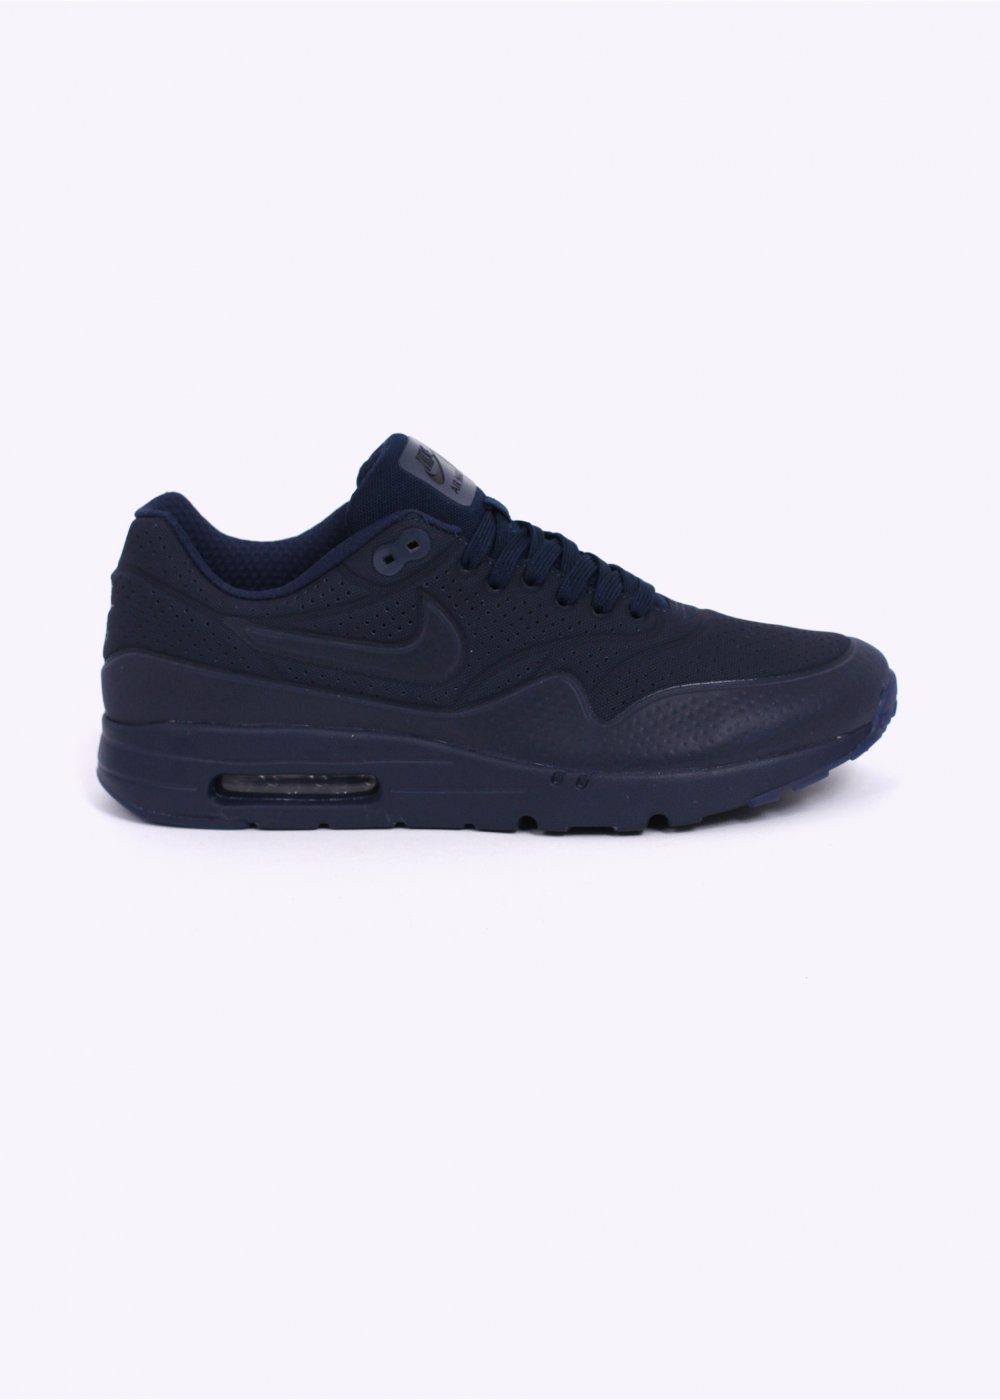 lowest price c98e7 05ba3 Air Max 1 Ultra Moire Trainers - Midnight Navy   Black